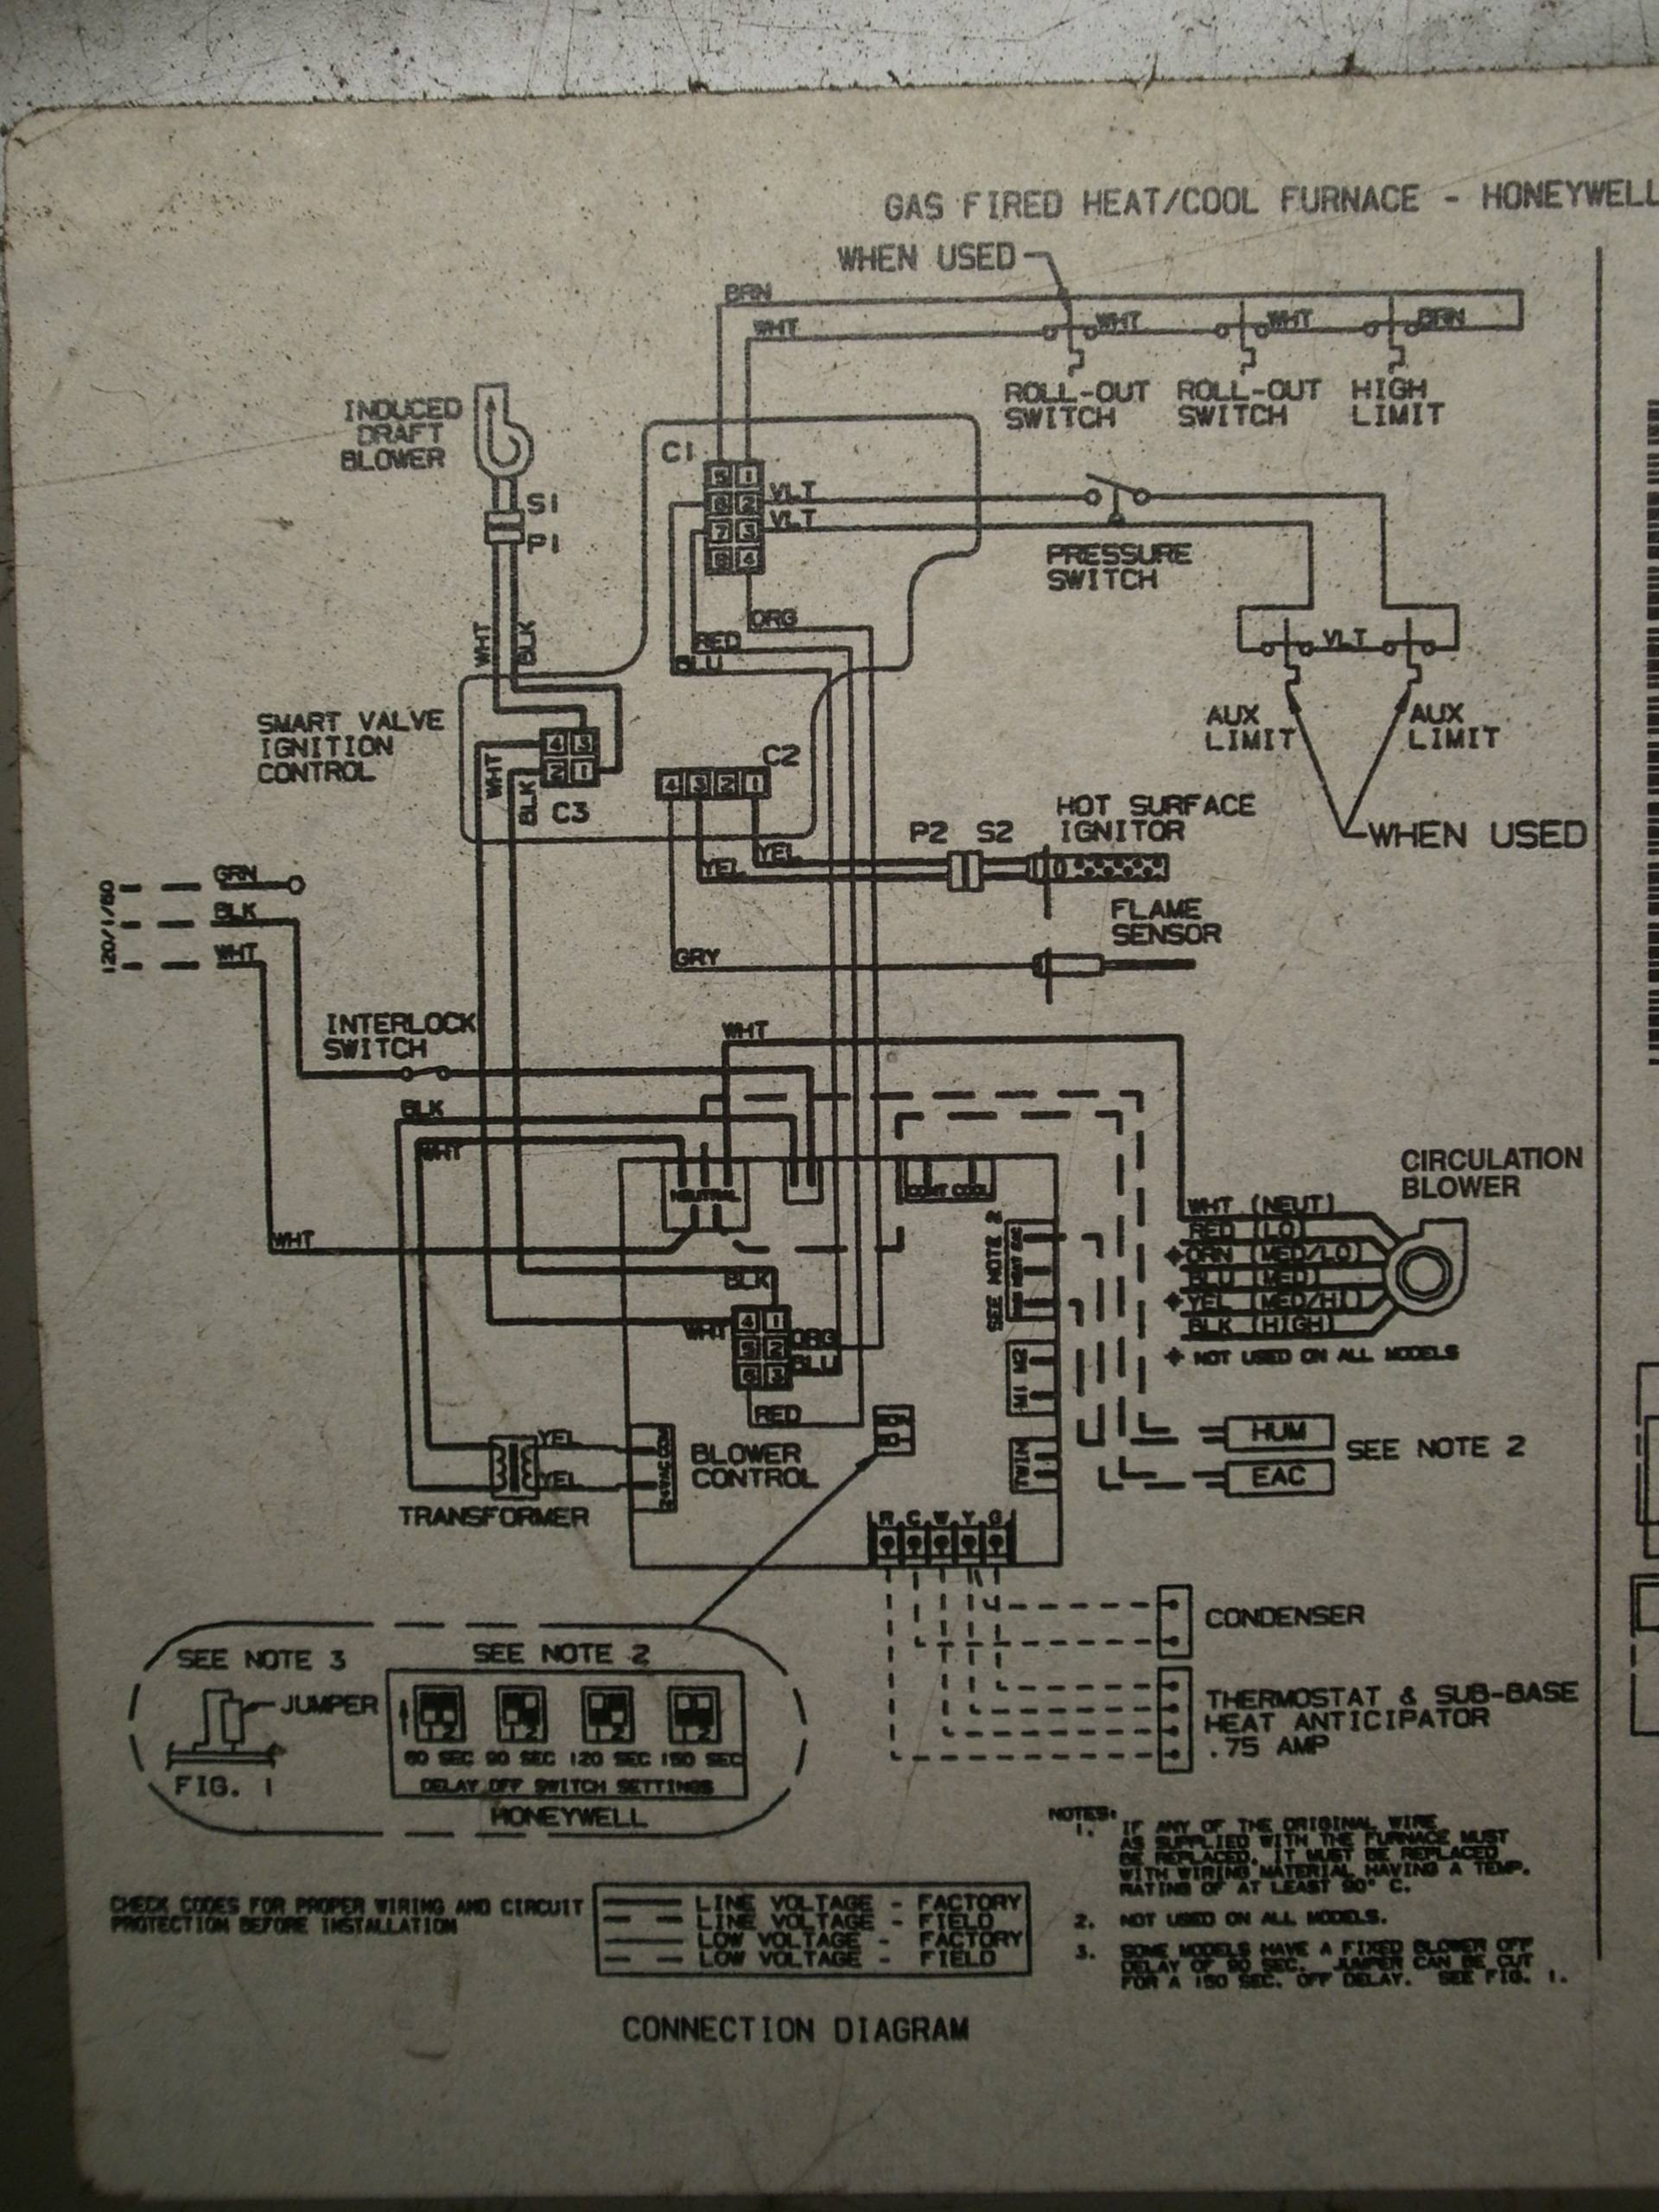 Hvac Diagrams Schematics Hvac Troubleshoot Ac Issue No Inside Blower Home